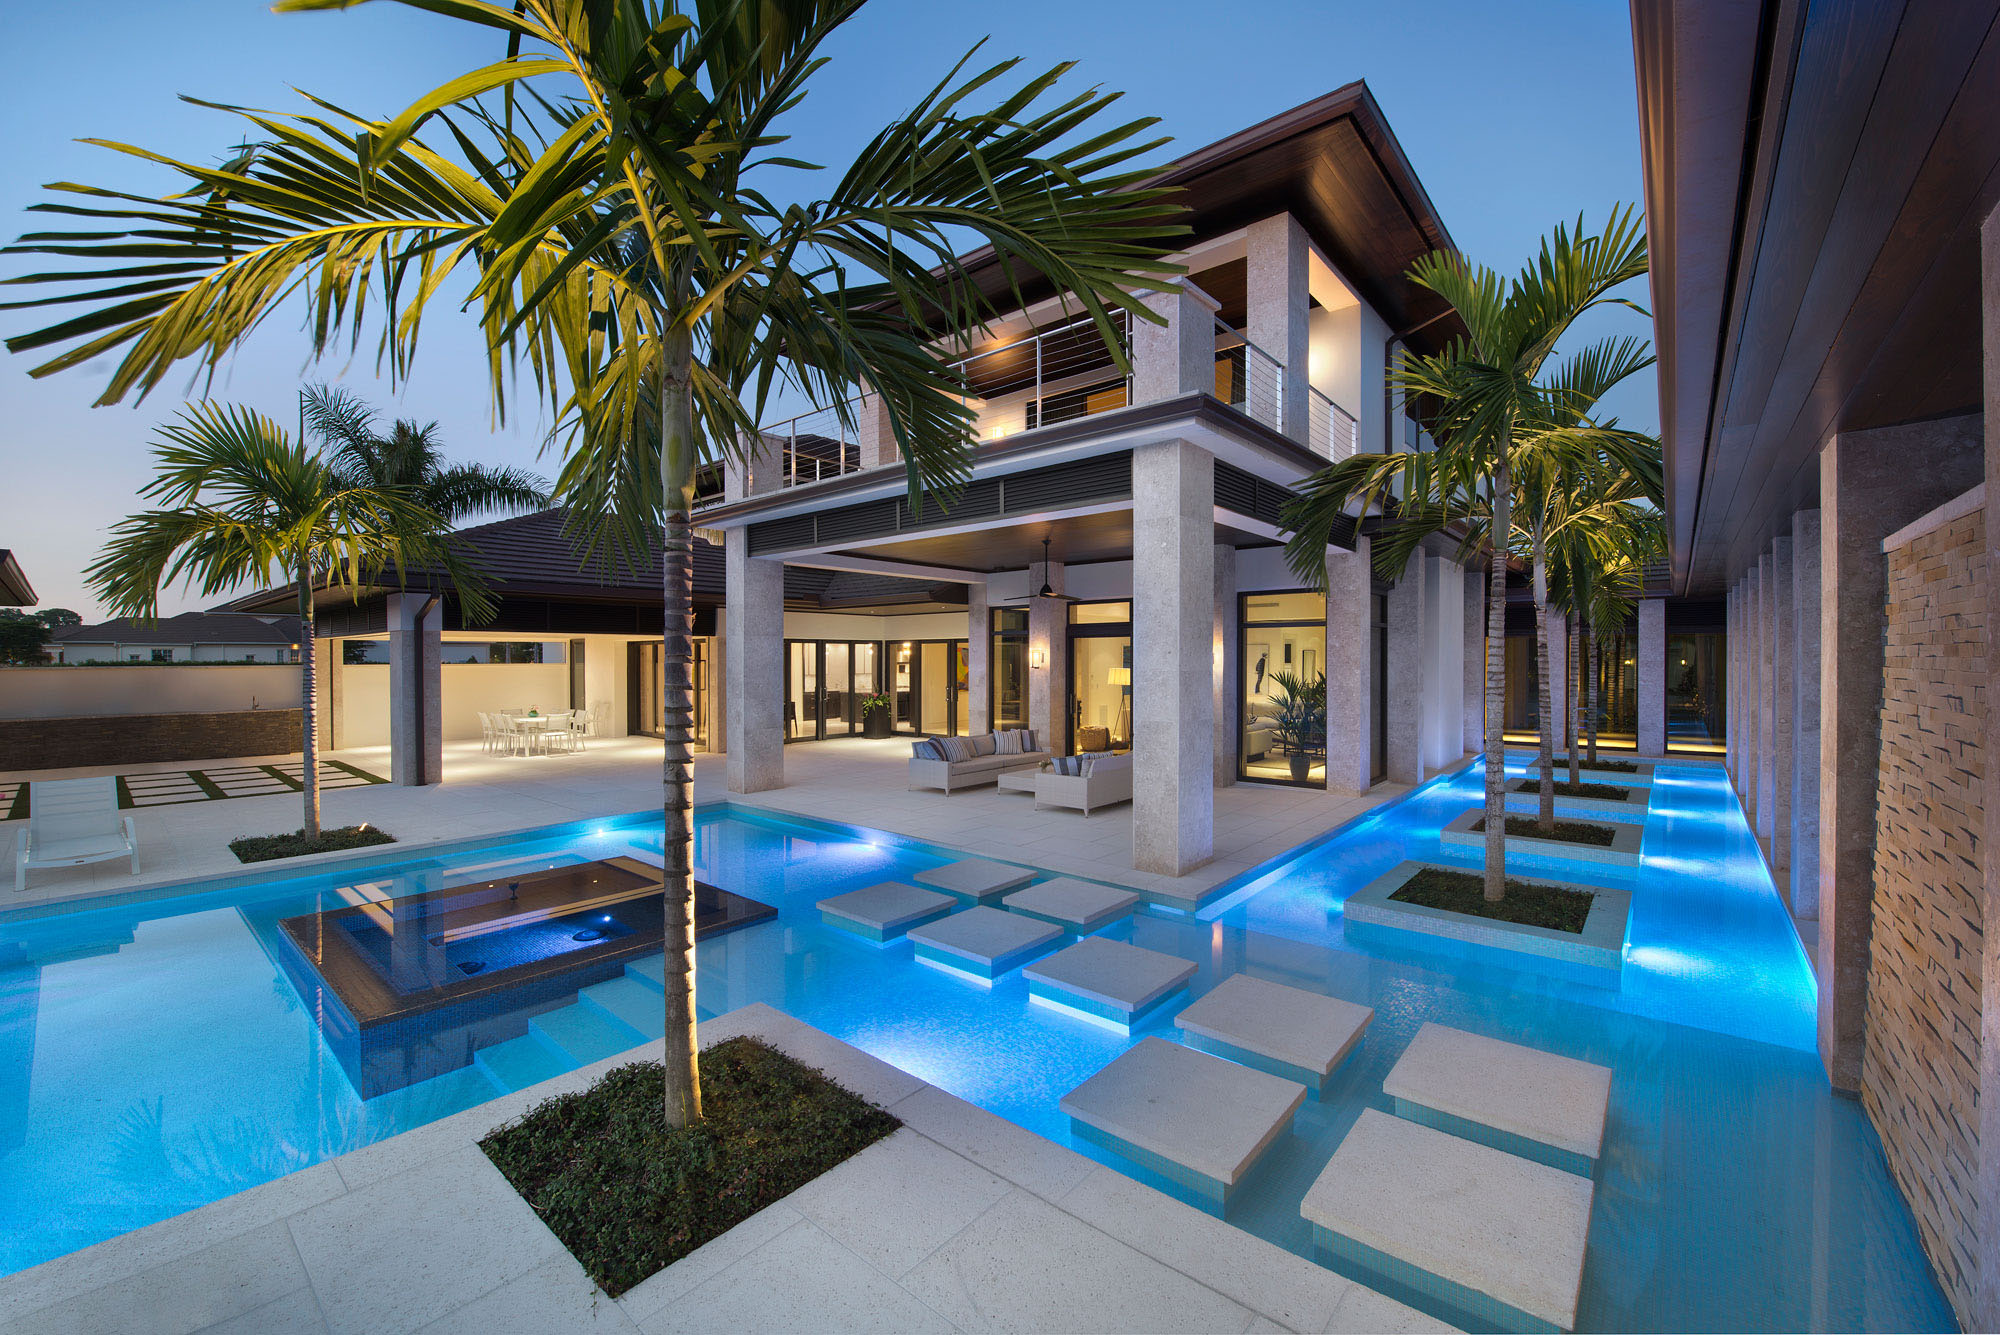 Landscape Architect Nashville Custom Dream Home In Florida With Elegant Swimming Pool